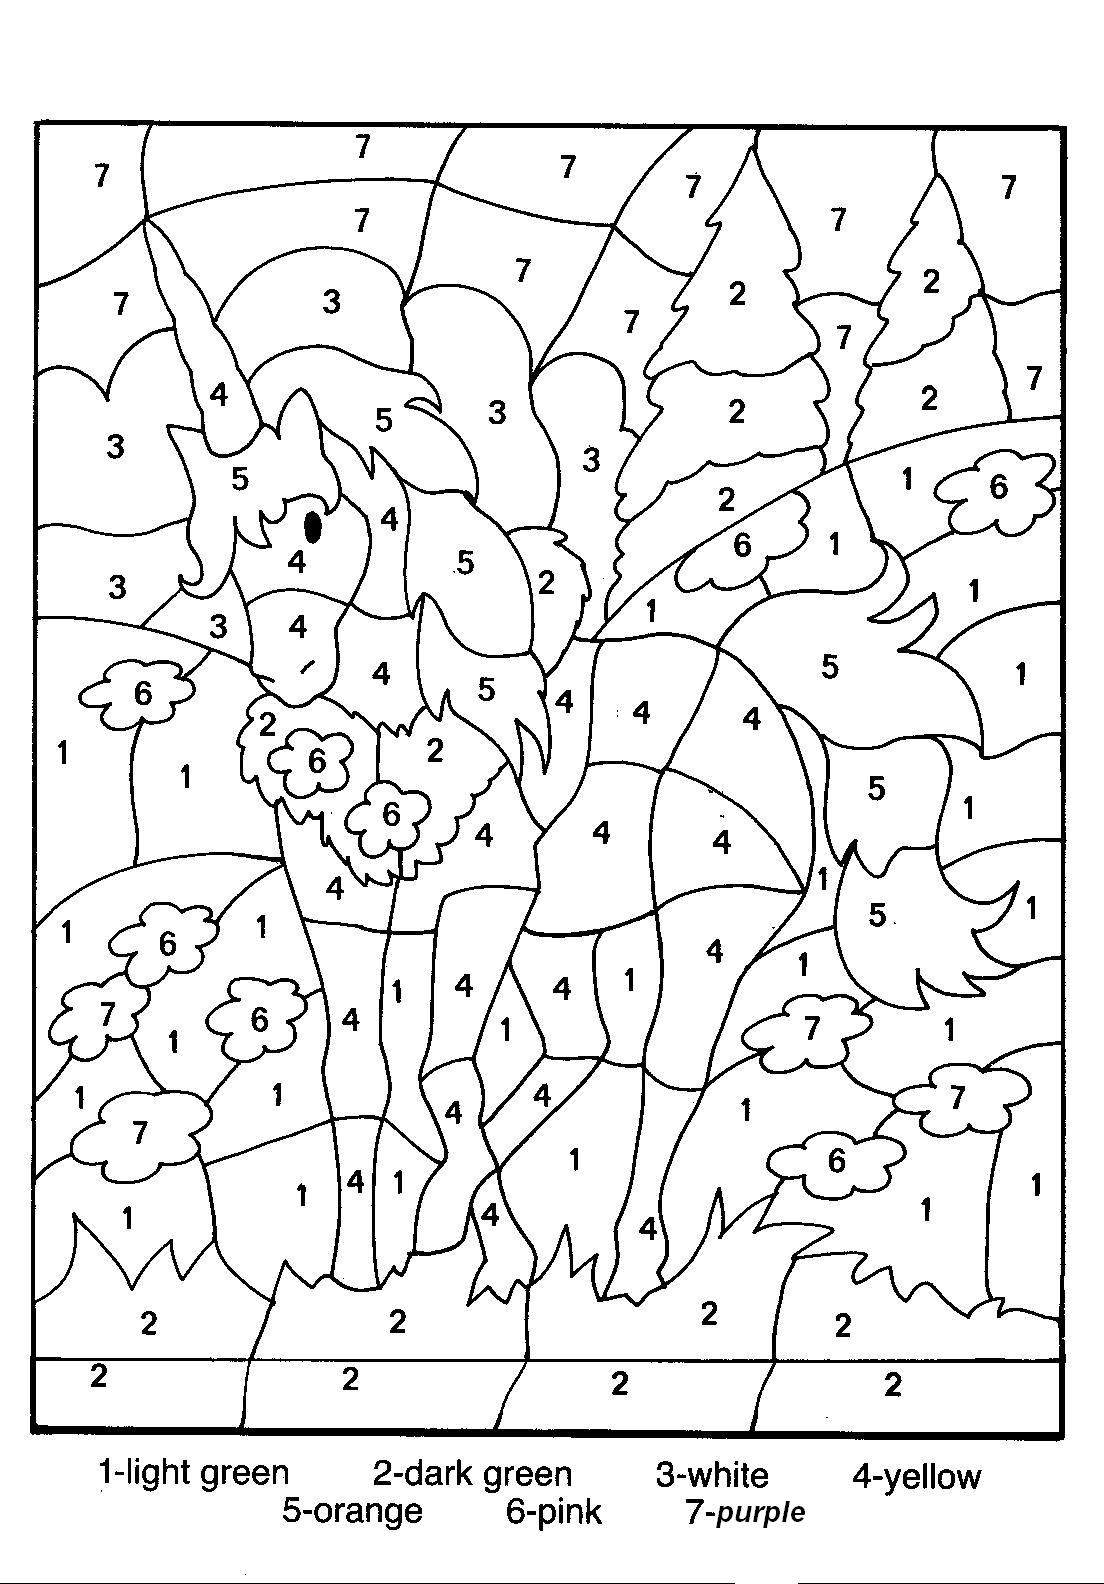 coloring pages for kids online complex coloring pages for teens and adults best kids for coloring online pages